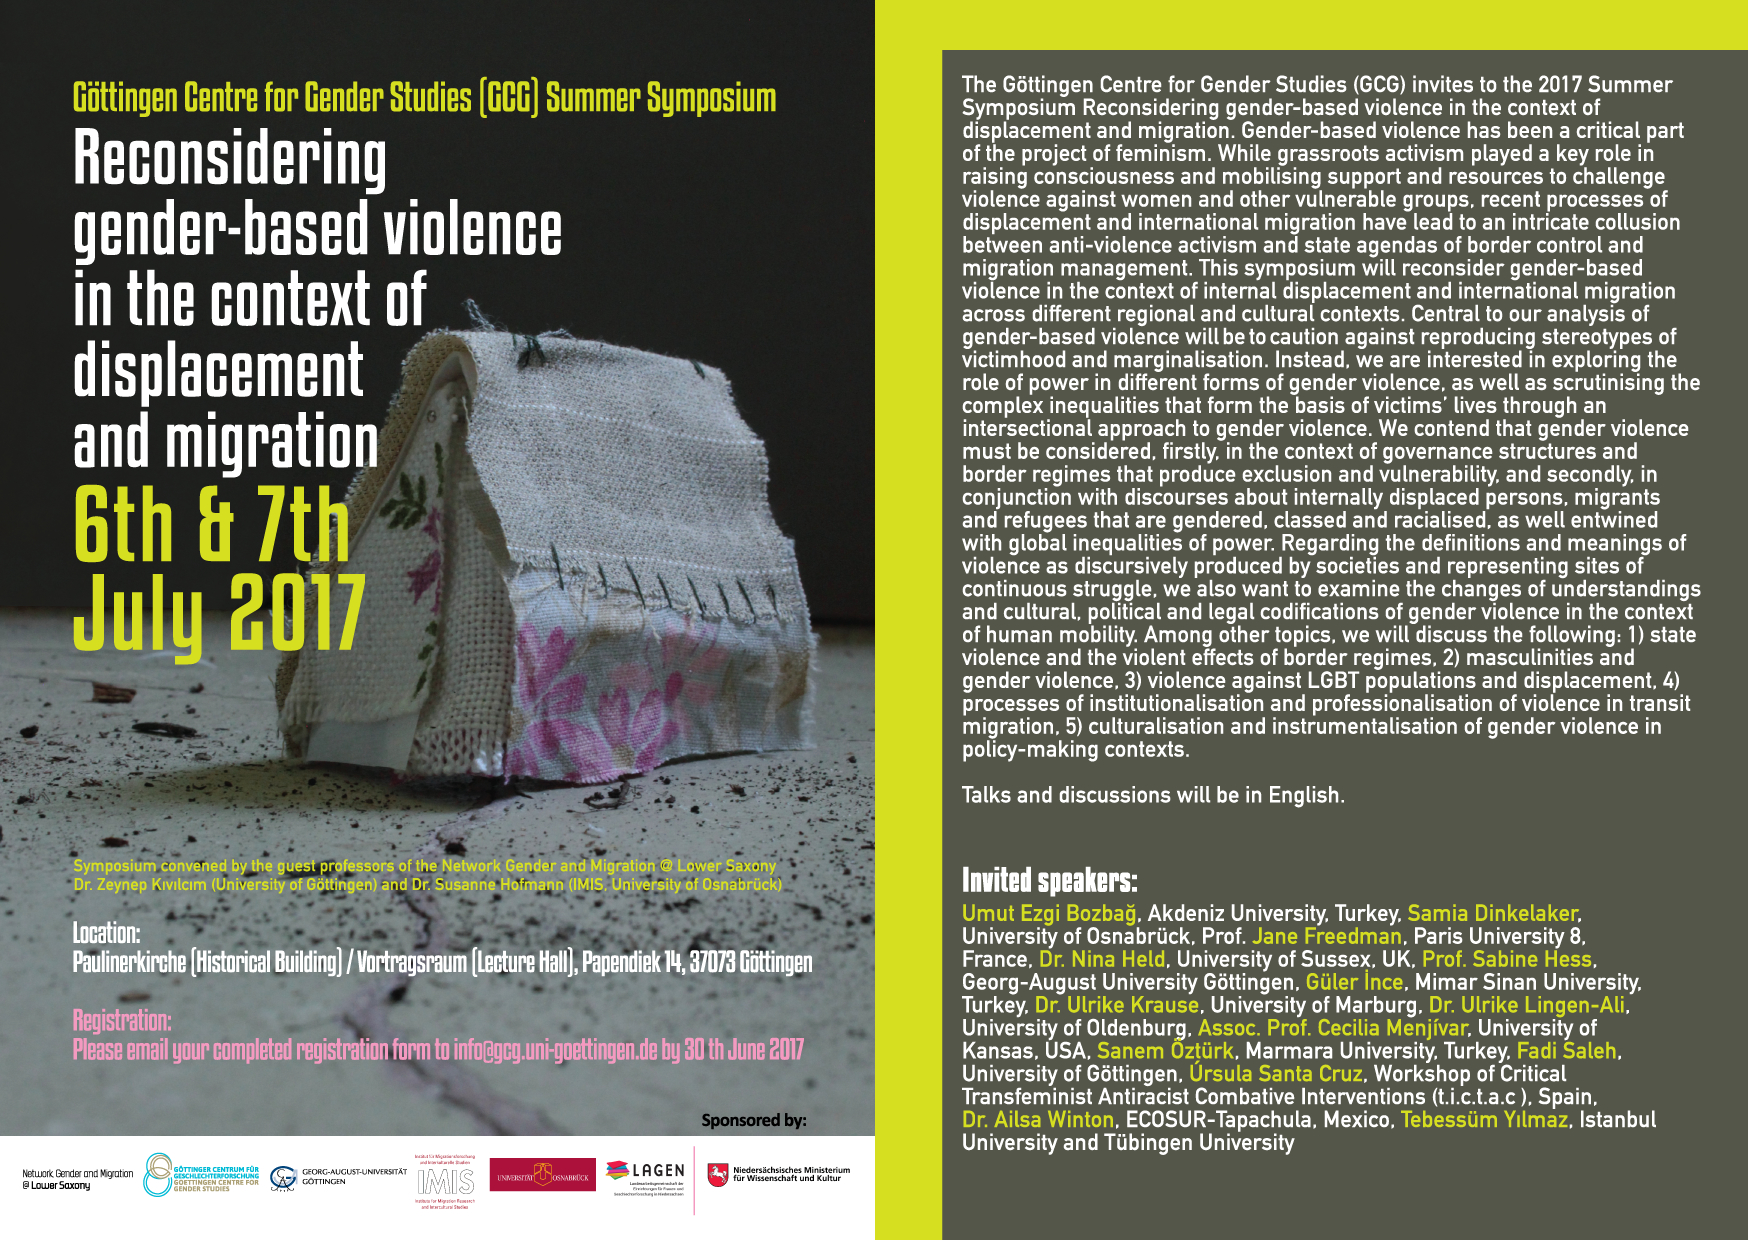 2017 Symposium Reconsidering gender-based violence